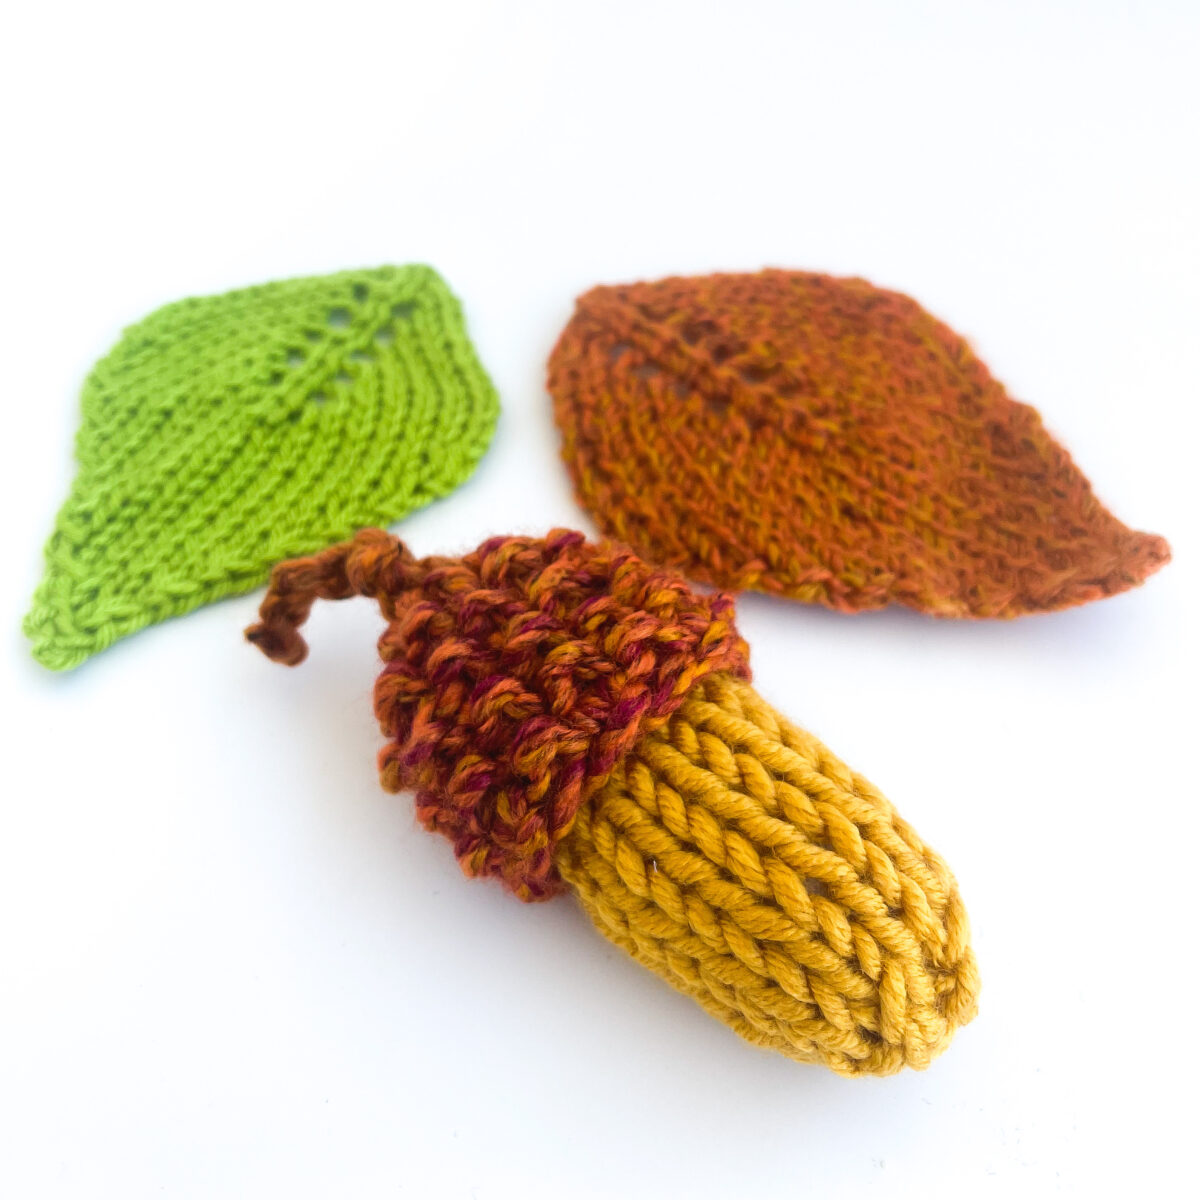 Knitted acorn with two knitted leaves.